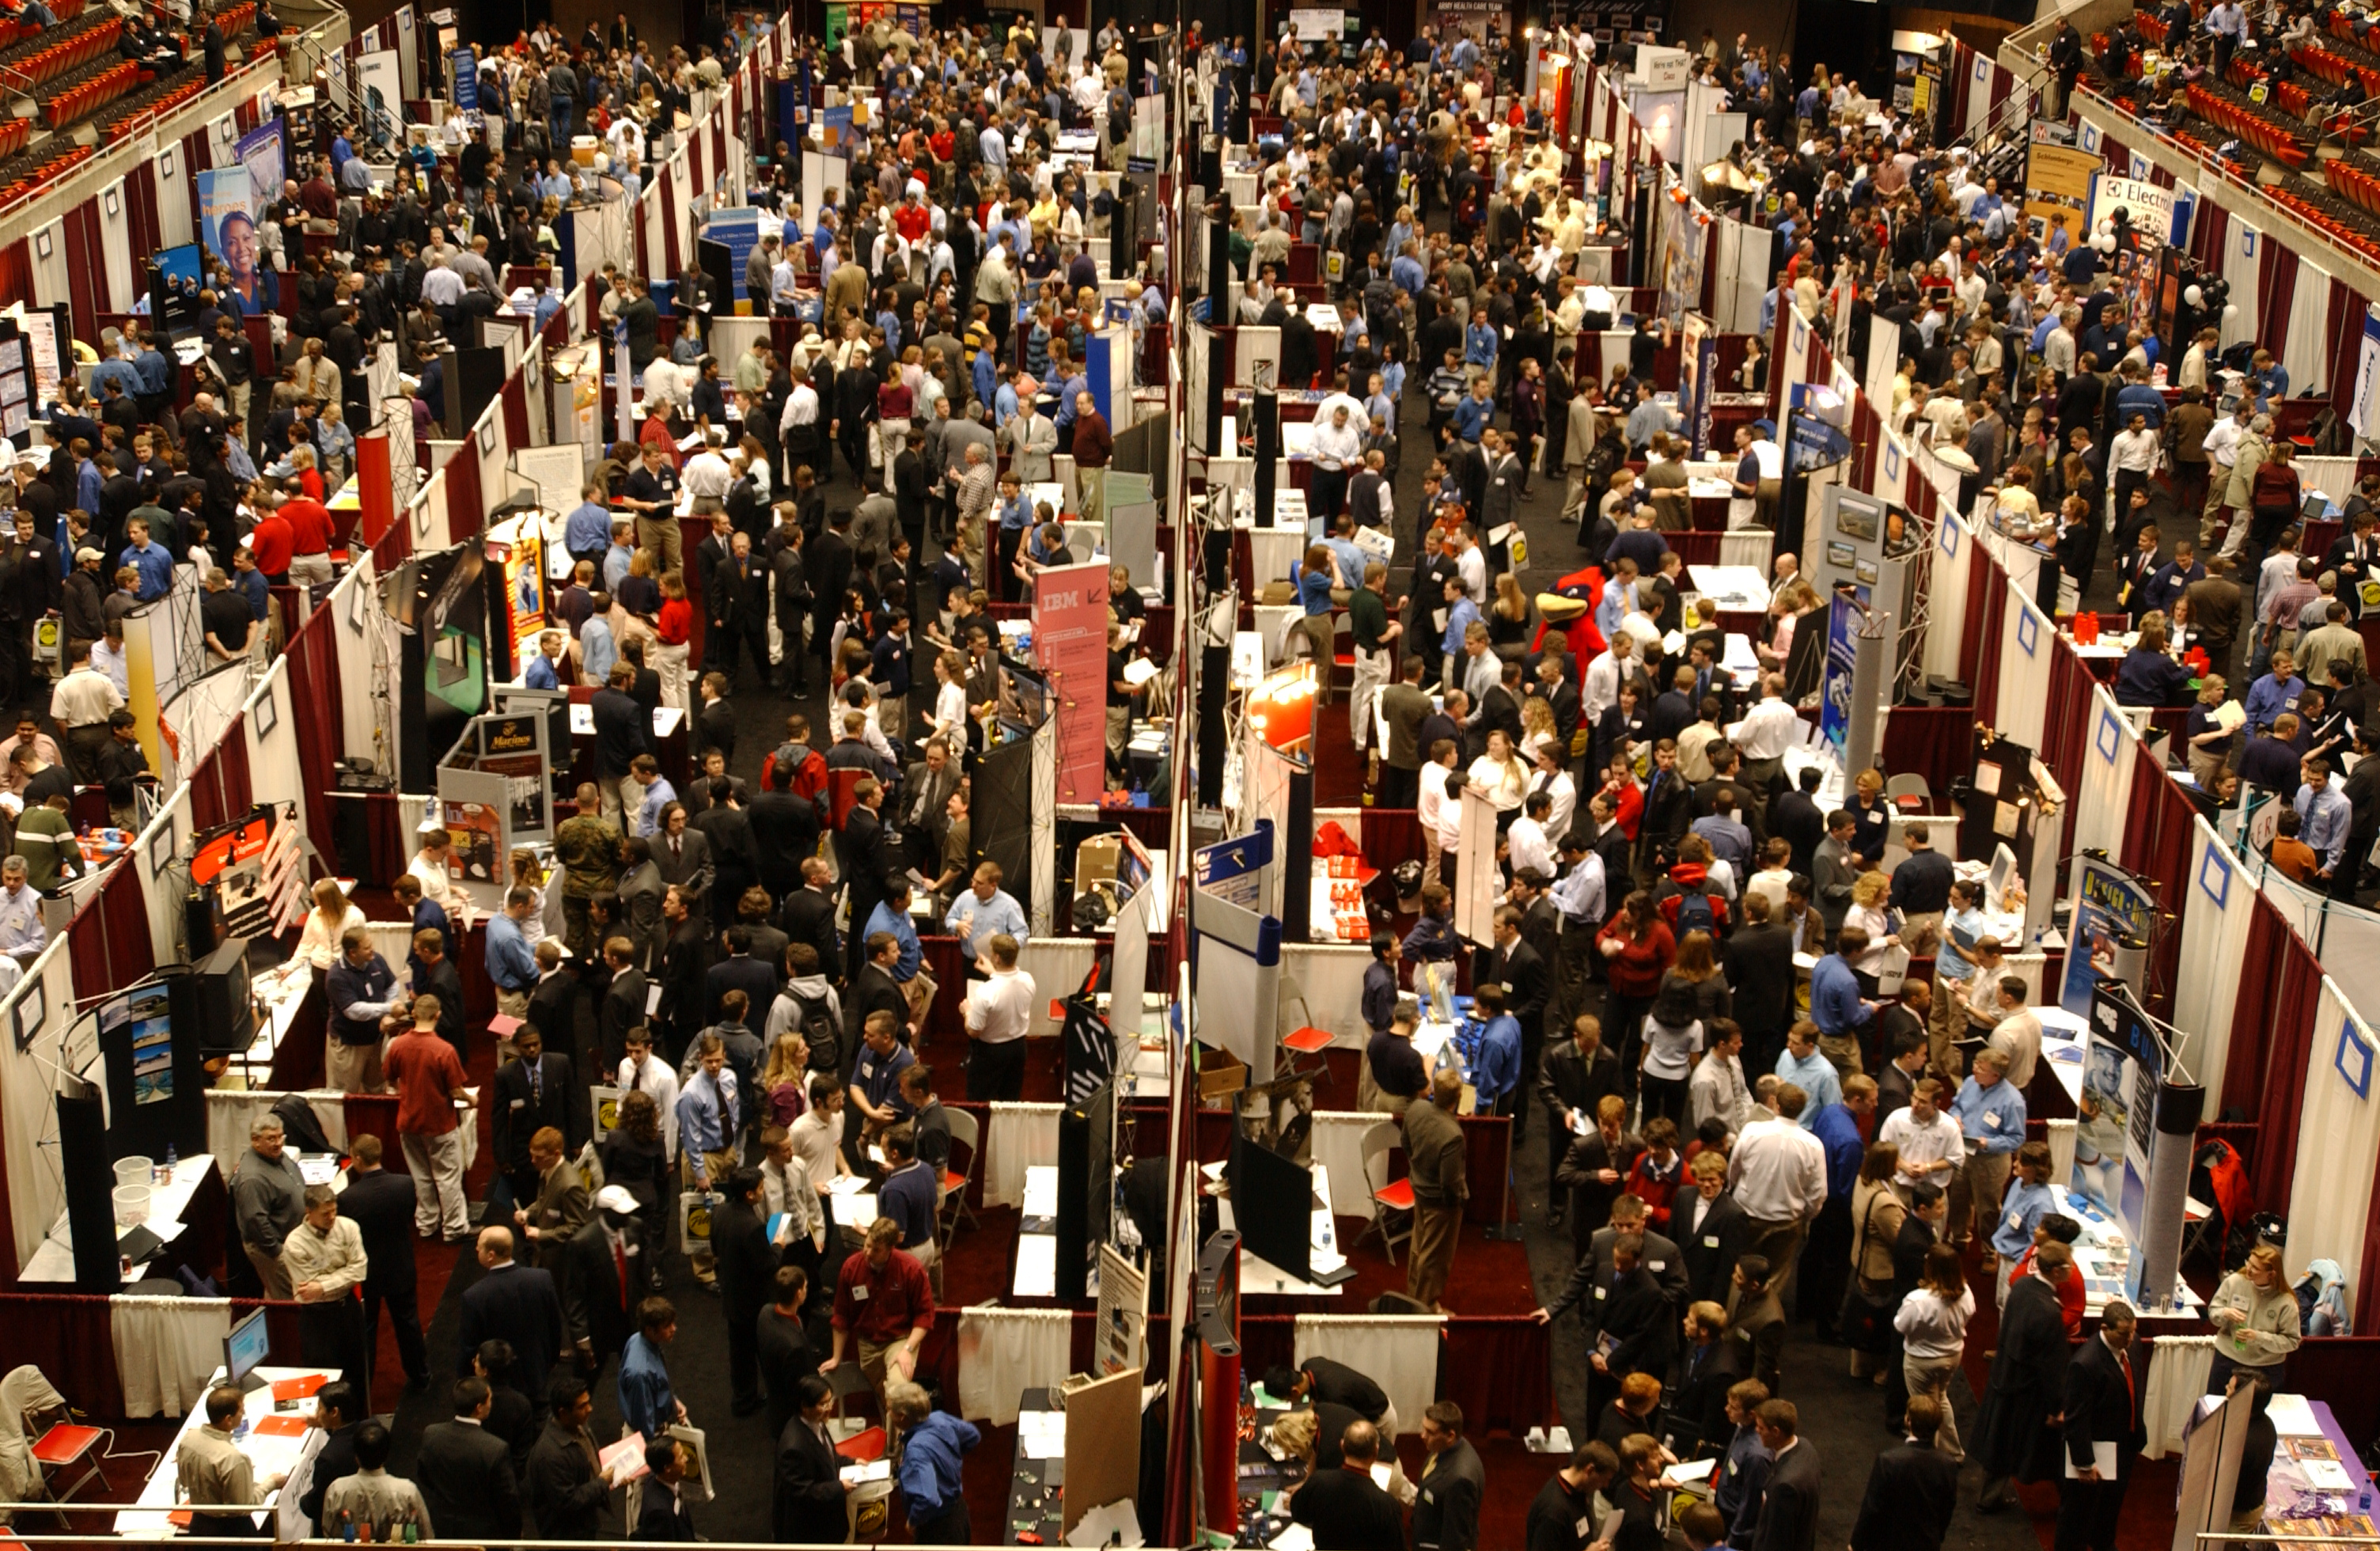 career fair etiquette helpful tips the the prepary how to make the most out of your next career fair